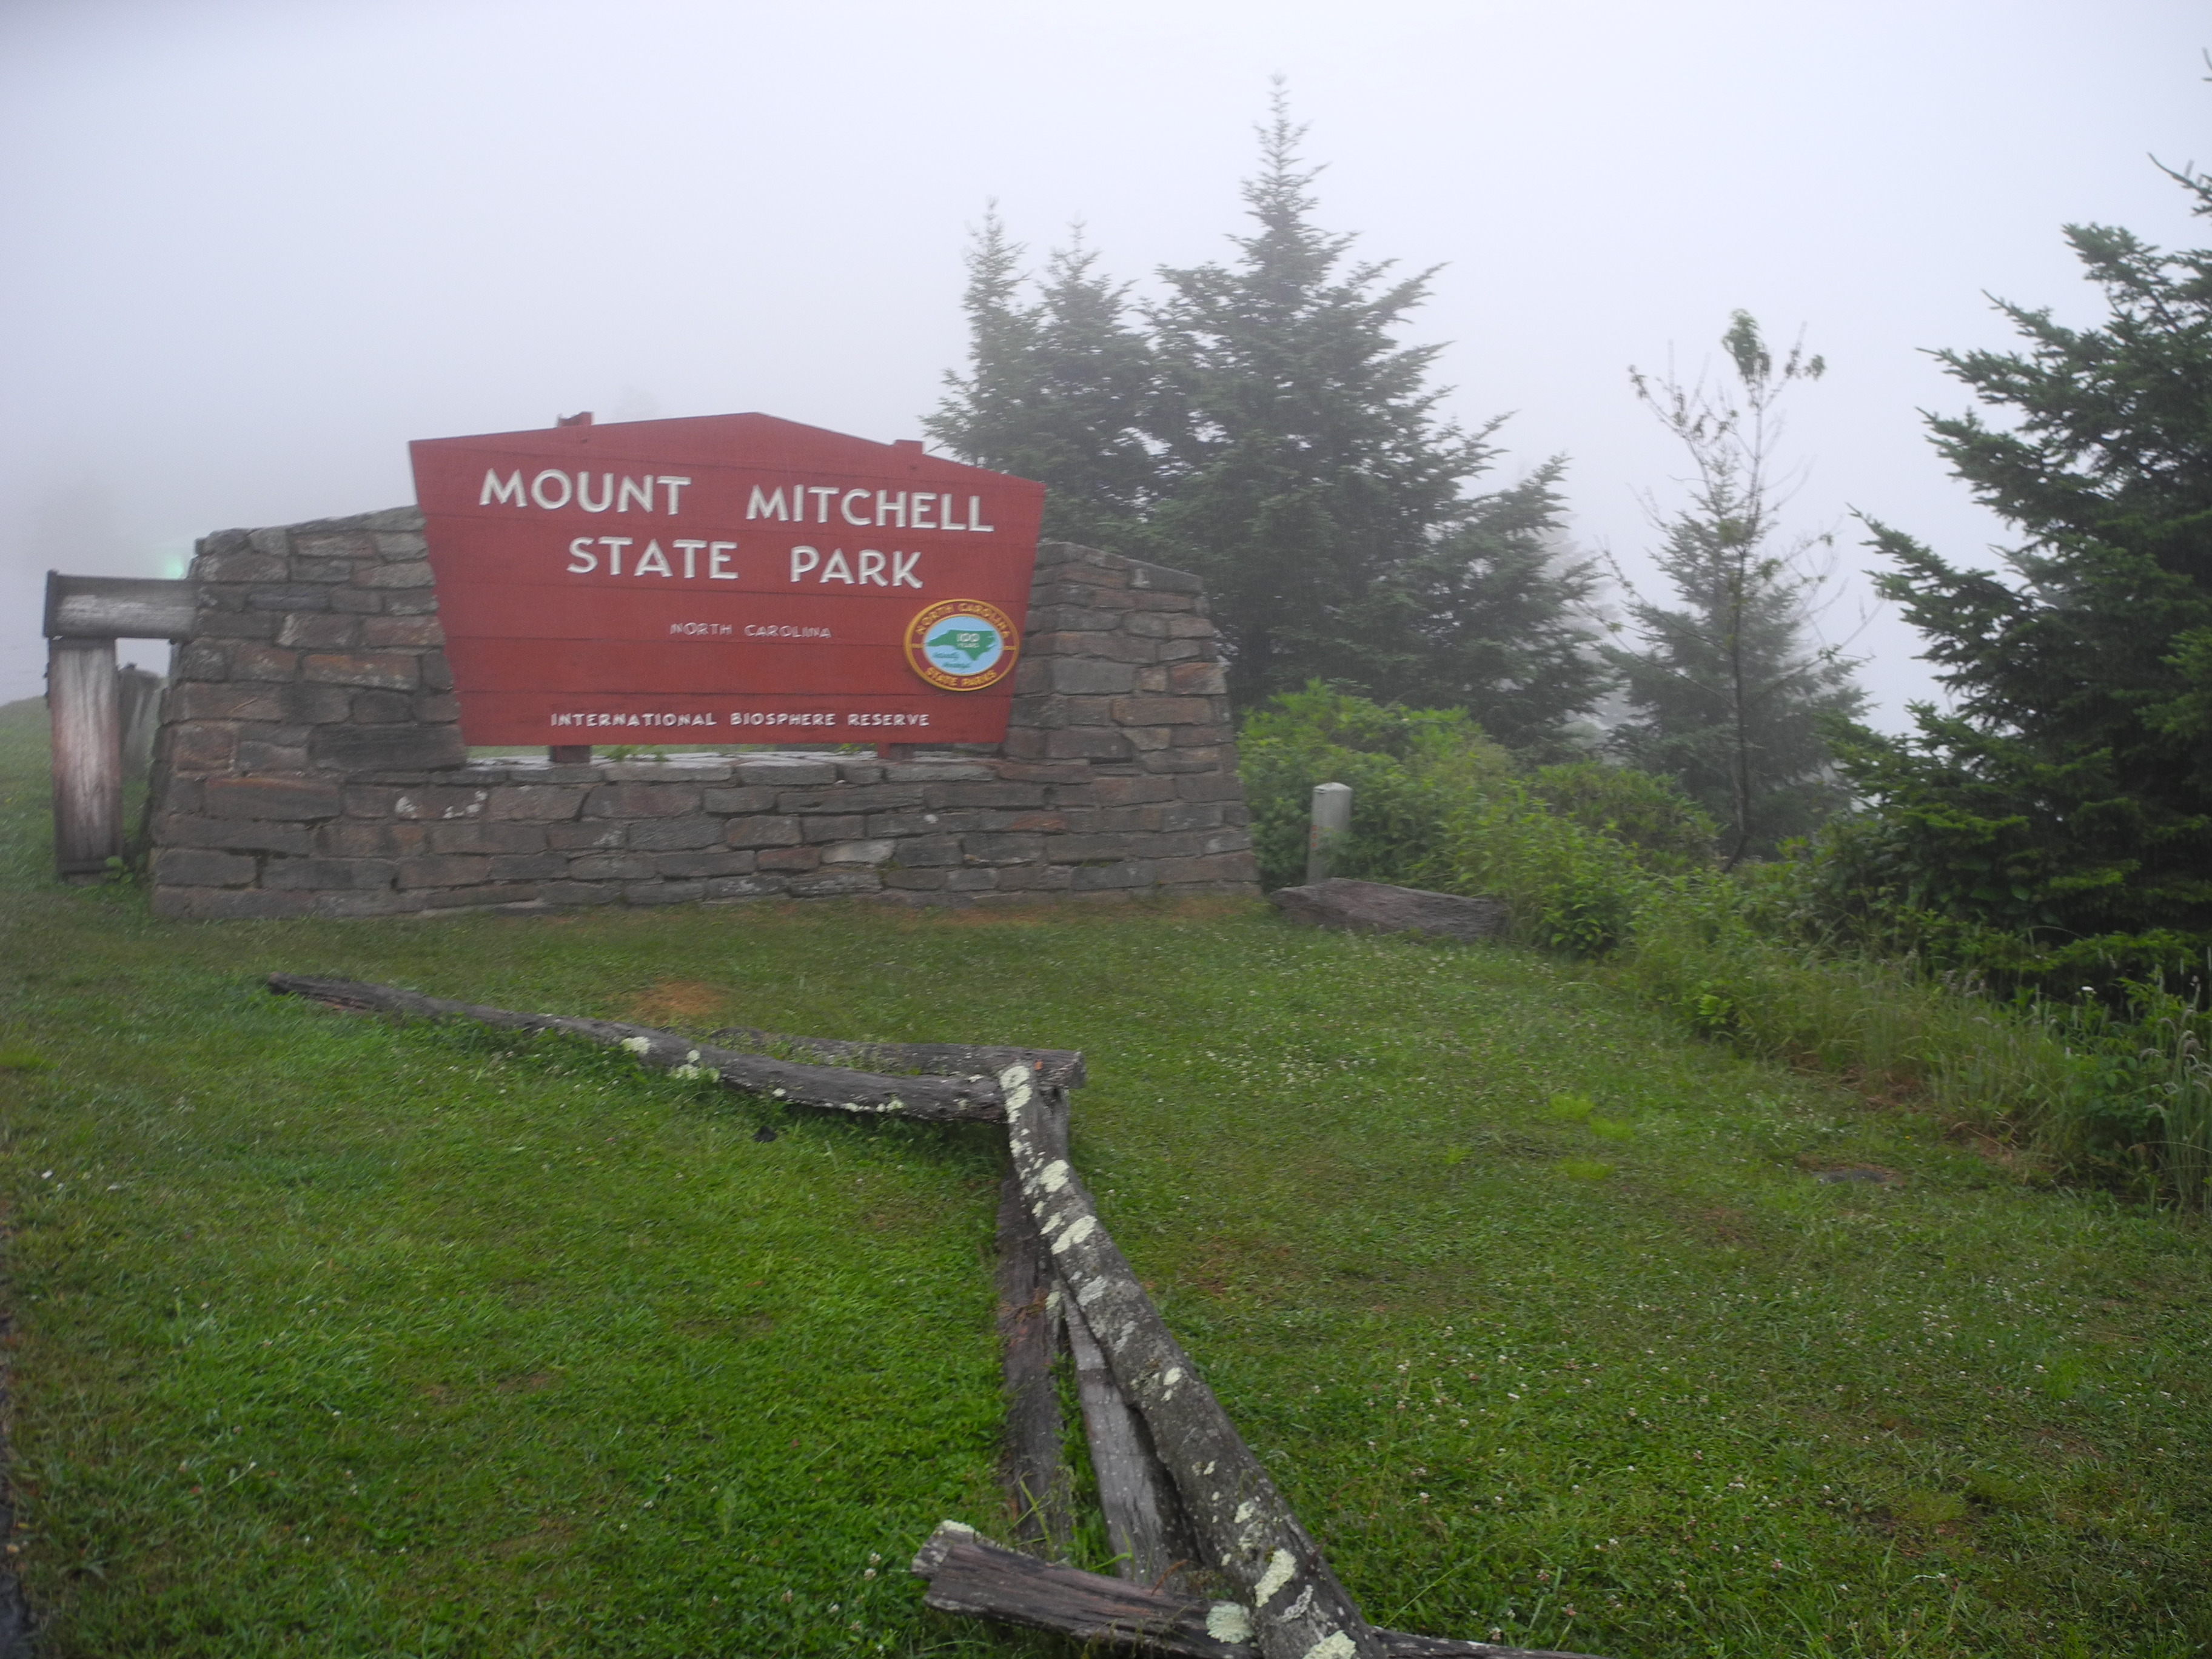 MtMitchellSIgn28Jun2016